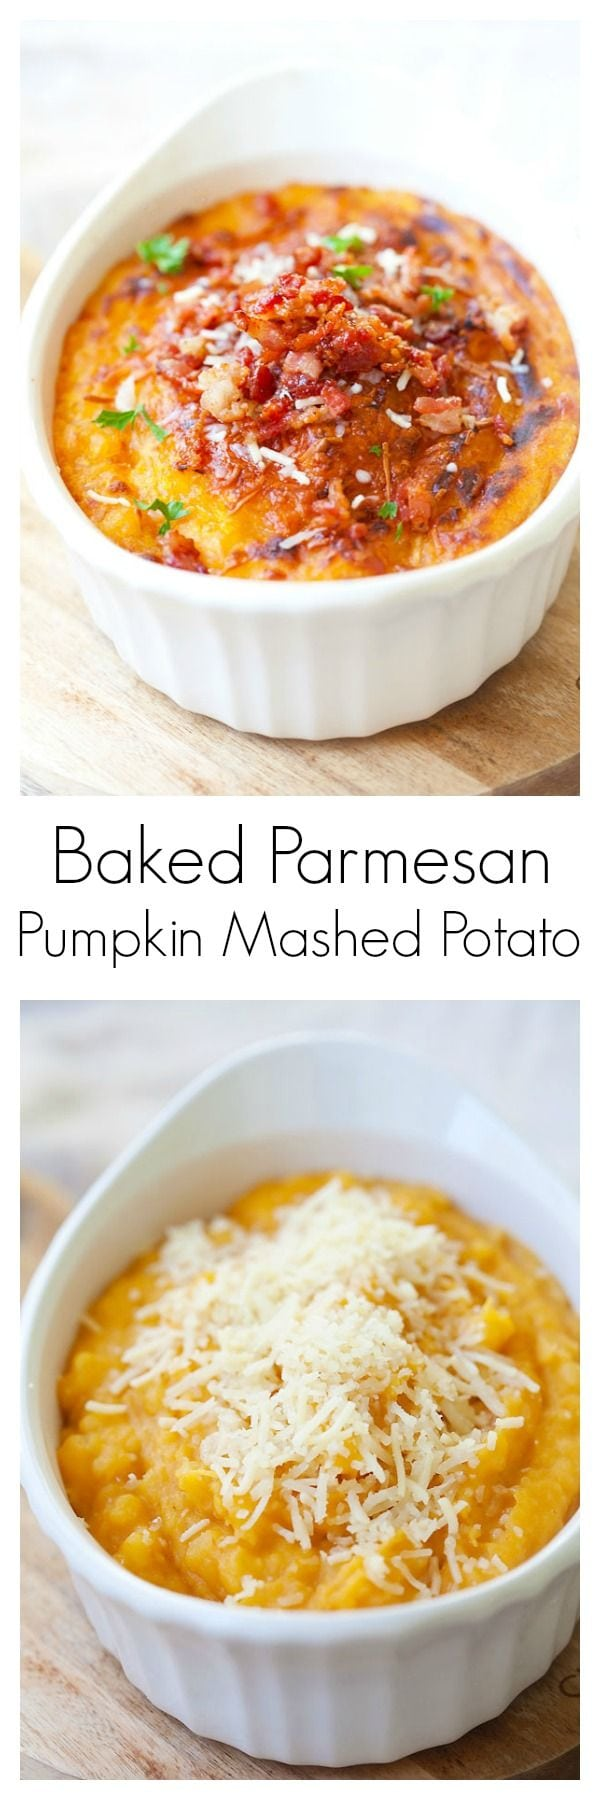 Parmesan Bacon Pumpkin Mashed Potatoes - baked mashed potatoes loaded with parmesan cheese, bacon and pumpkin. Rich, sweet, cheesy and so easy to make | rasamalaysia.com